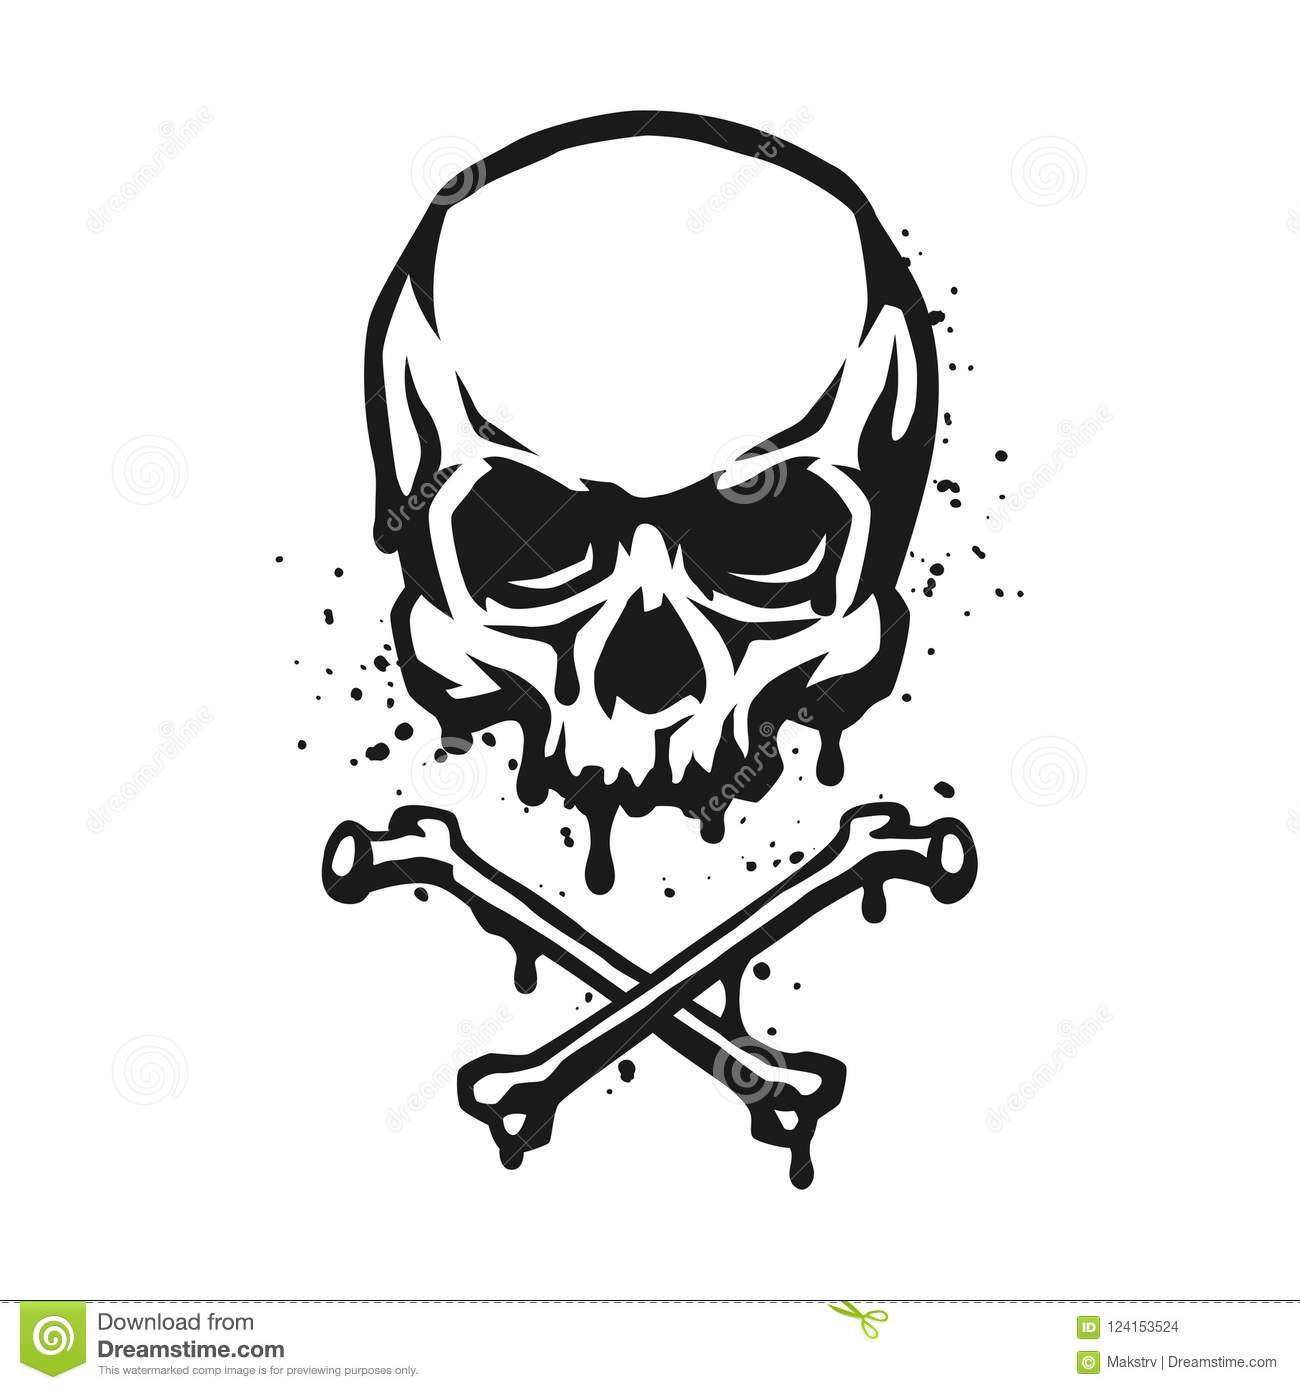 Skull And Crossbones In Grunge Style Stock Vector Illustration Of